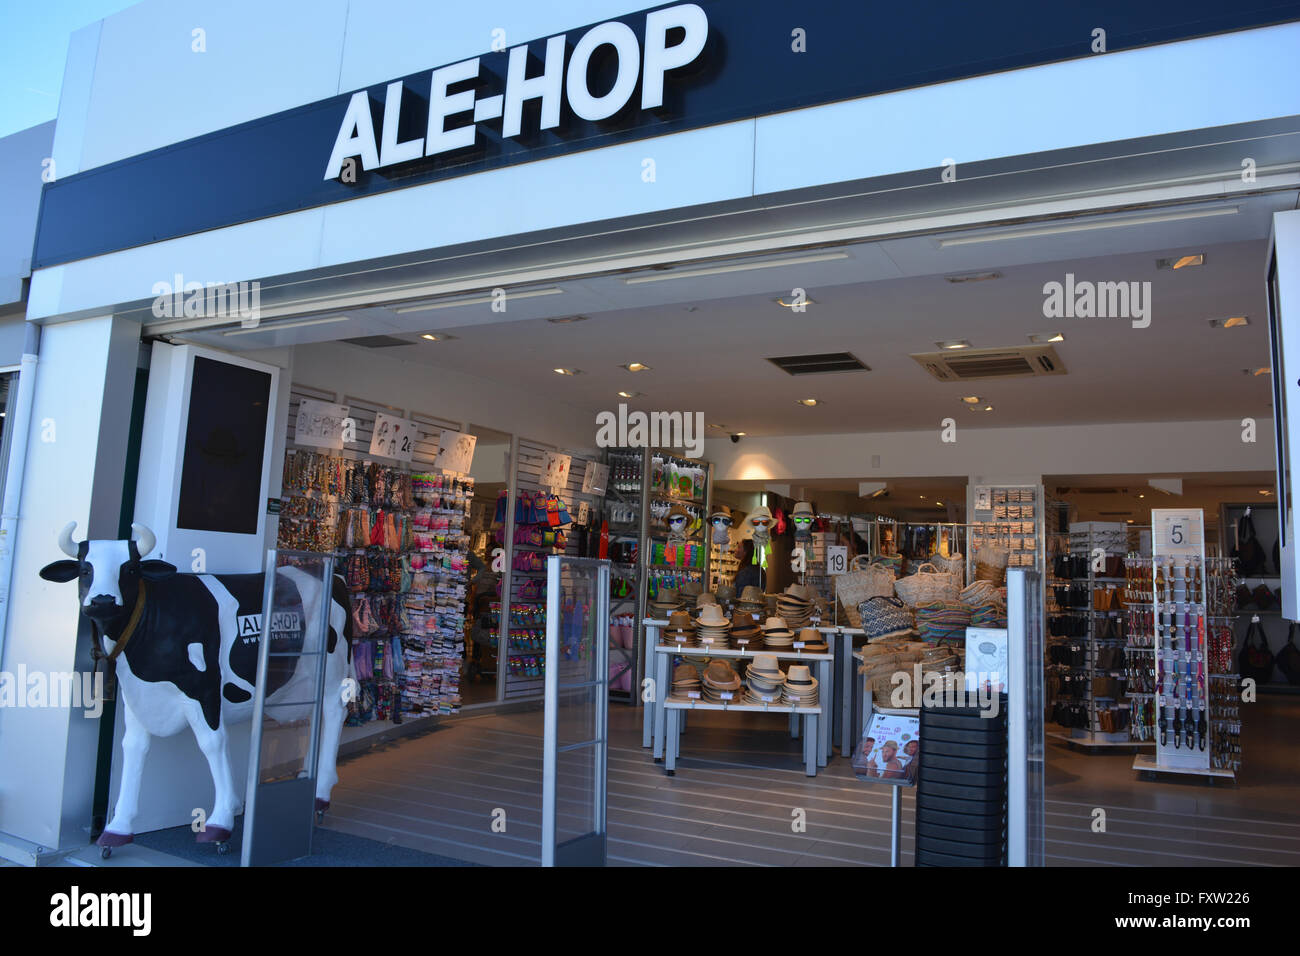 ale hop shop on the arenal javea xabia alicante valencia spain stock photo royalty free. Black Bedroom Furniture Sets. Home Design Ideas